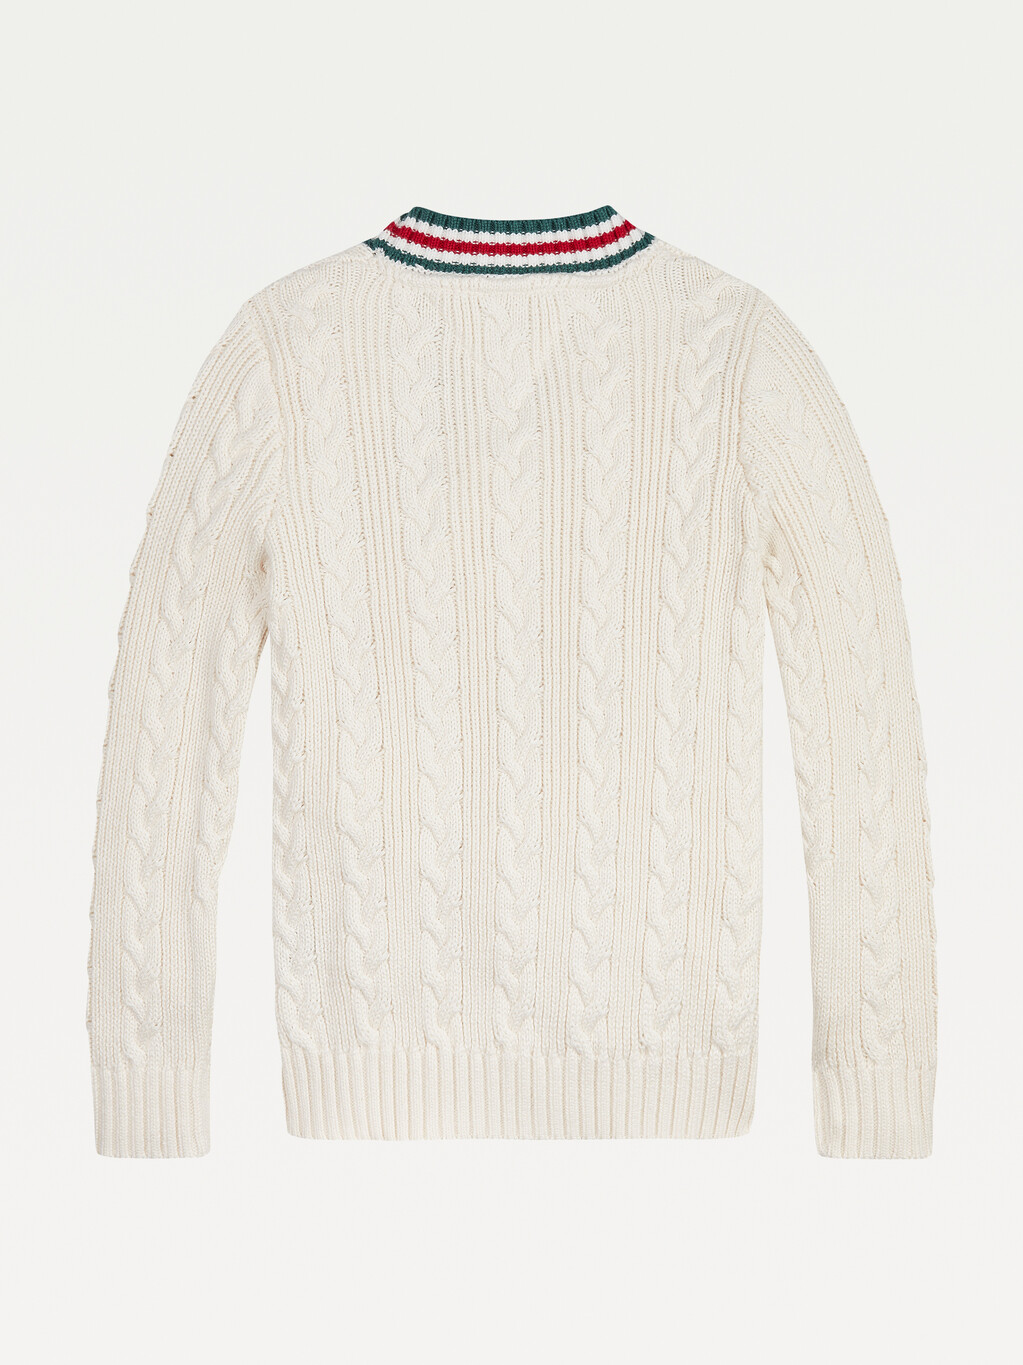 BOYS TIPPED CABLE KNIT CARDIGAN